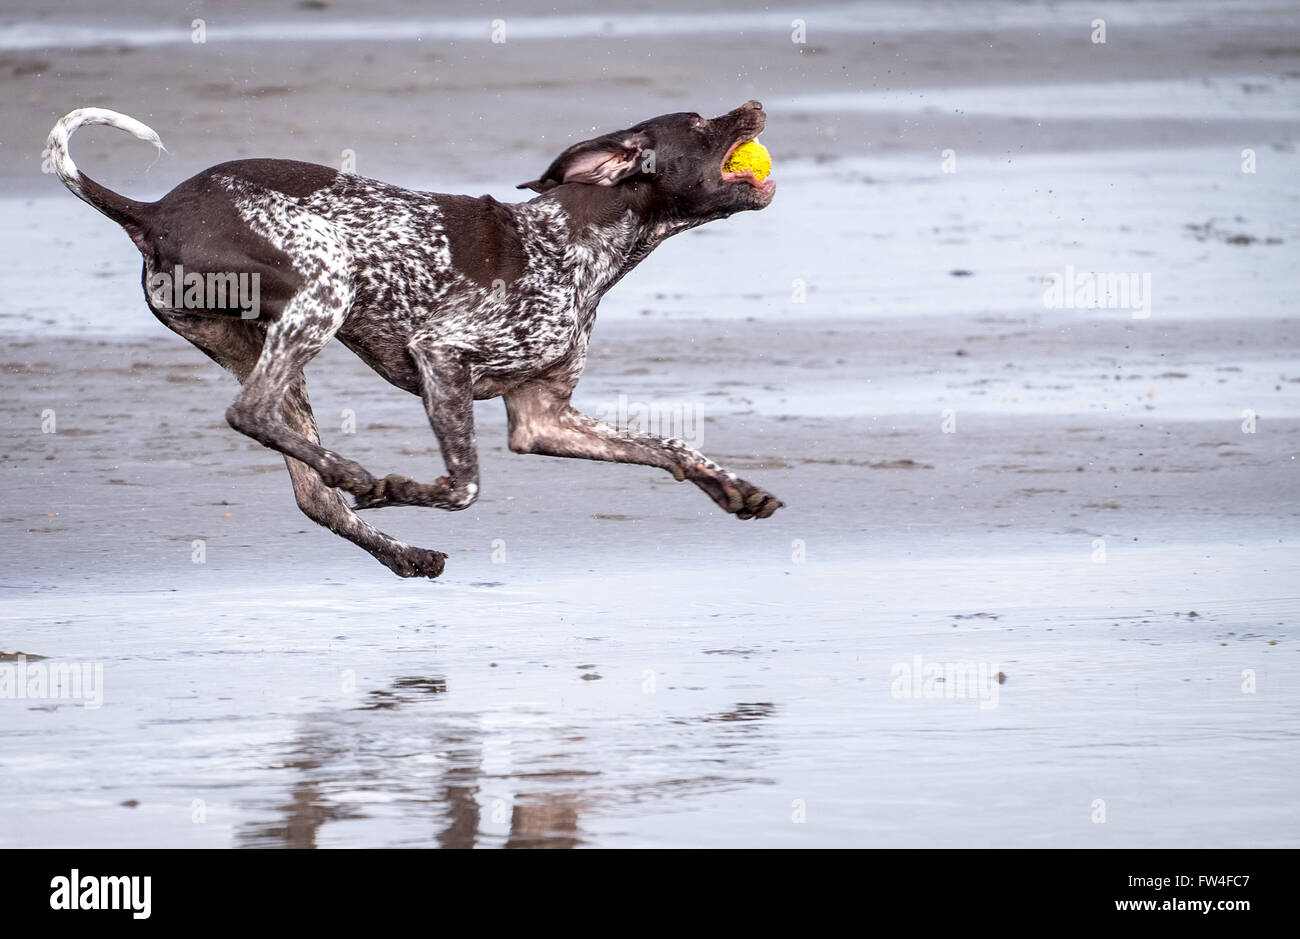 A dog running playing catch on a beach at Westward Ho in Devon, UK - Stock Image